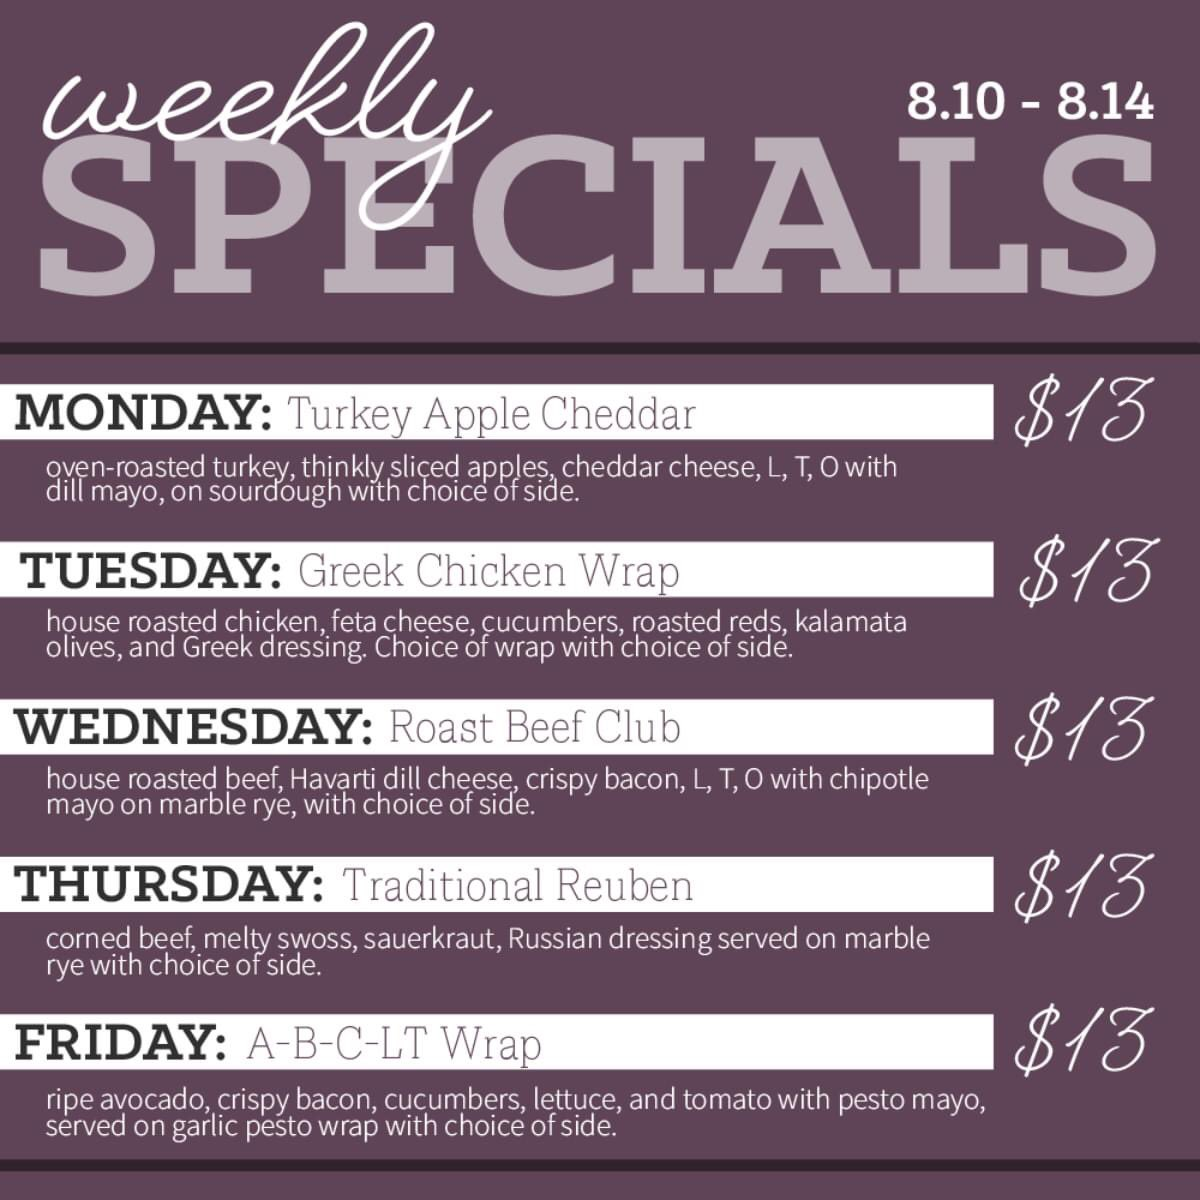 Weekly specials from Spa Cafe on Broadway! #StrongerTogether #ilovesaratogacounty